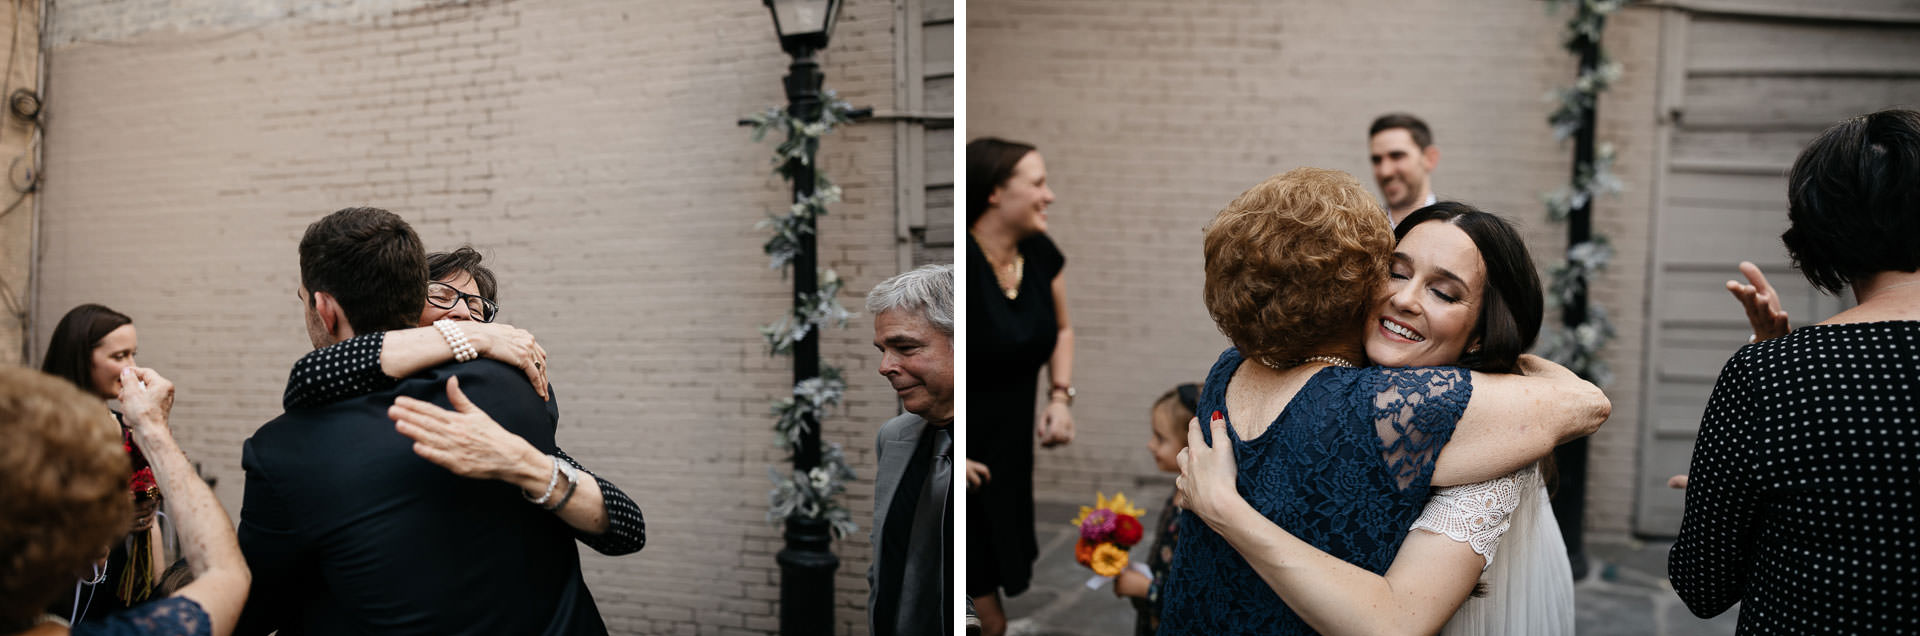 Emmy & Jesse Intimate New York New York Elopement in West Village, New York, by Jean-Laurent Gaudy